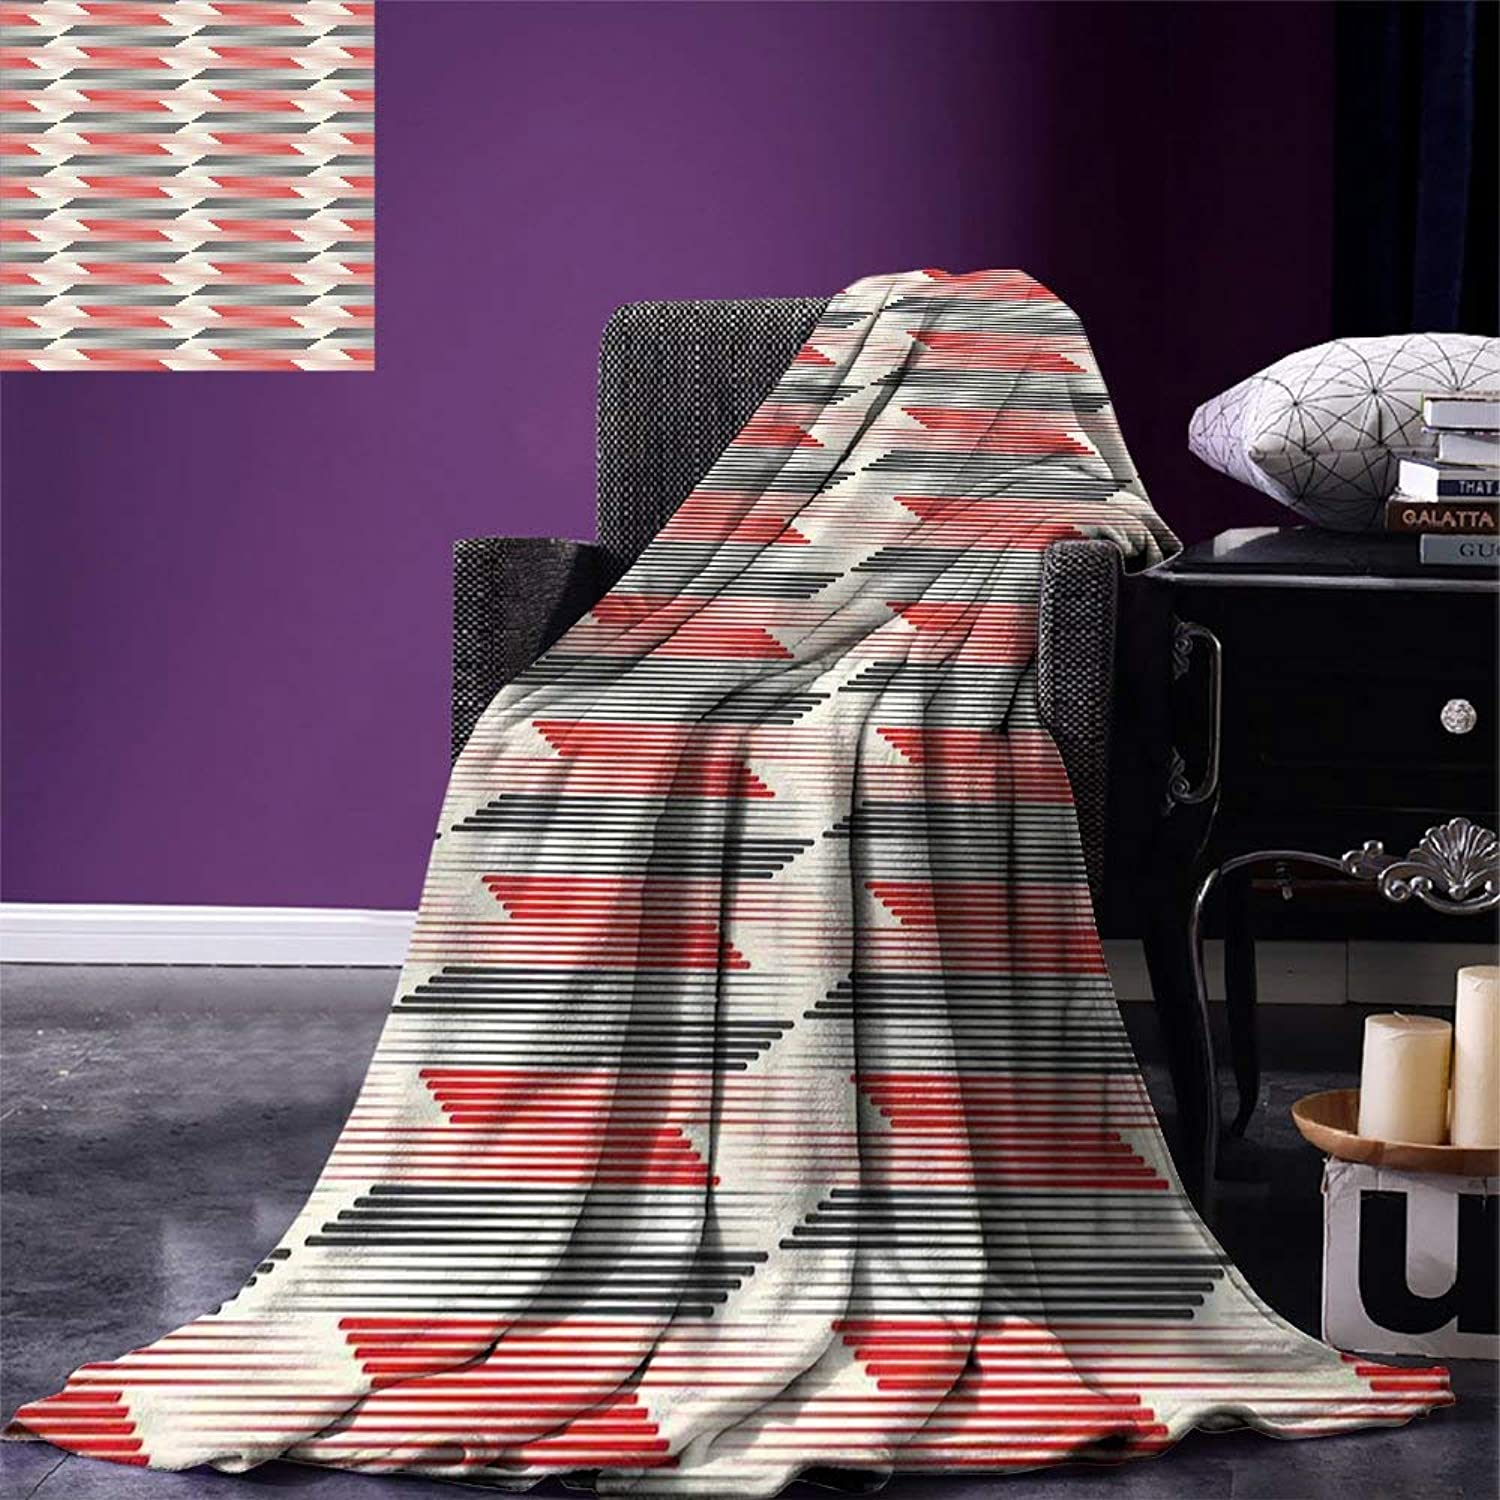 VAMIX Modern Fashion Blanket Geometric Graphic Grid Abstract Pattern with Thin and Bold Lines Velvet Plush Fashion Blanket Charcoal Grey Scarlet Cream, Blanket